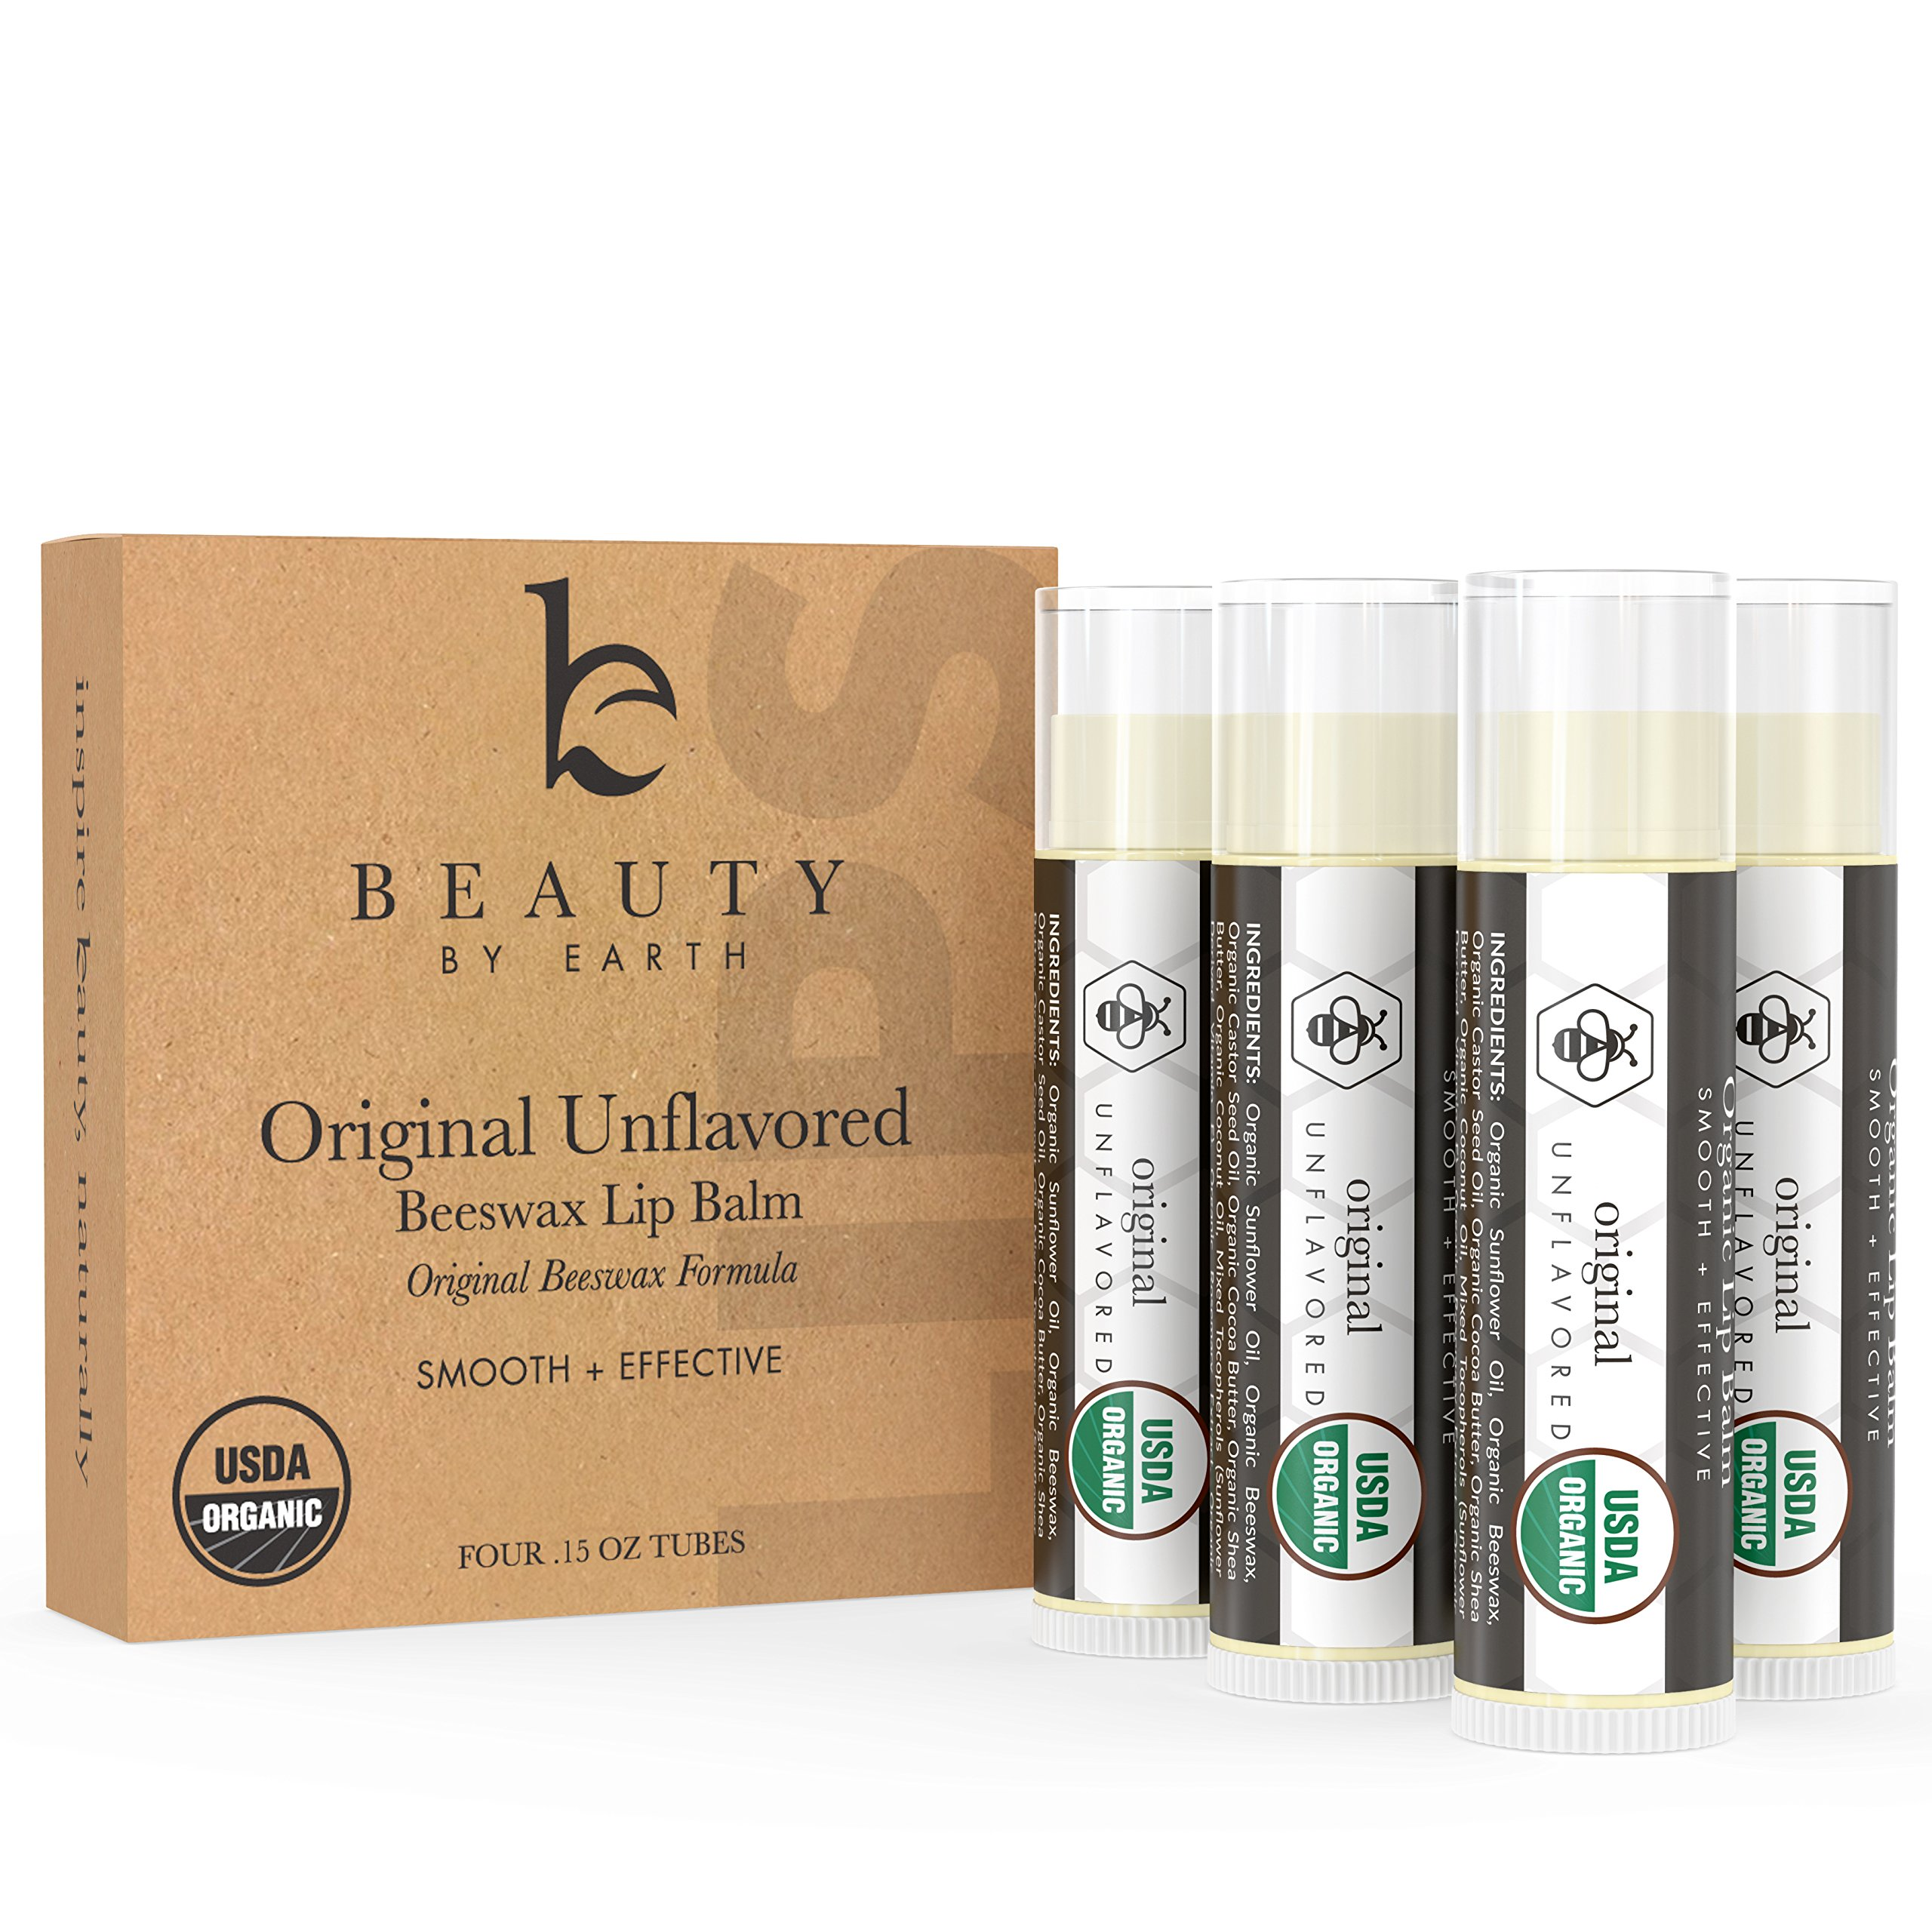 Organic Lip Balm Original Unflavored - 4 Tubes of Natural Lip Balm, Lip Moisturizer, Lip Treatment for Dry Lips, Lip Care Gifts for Women or Men, Lip Repair, Organic Chapstick, Stocking Stuffer Ideas by Beauty by Earth